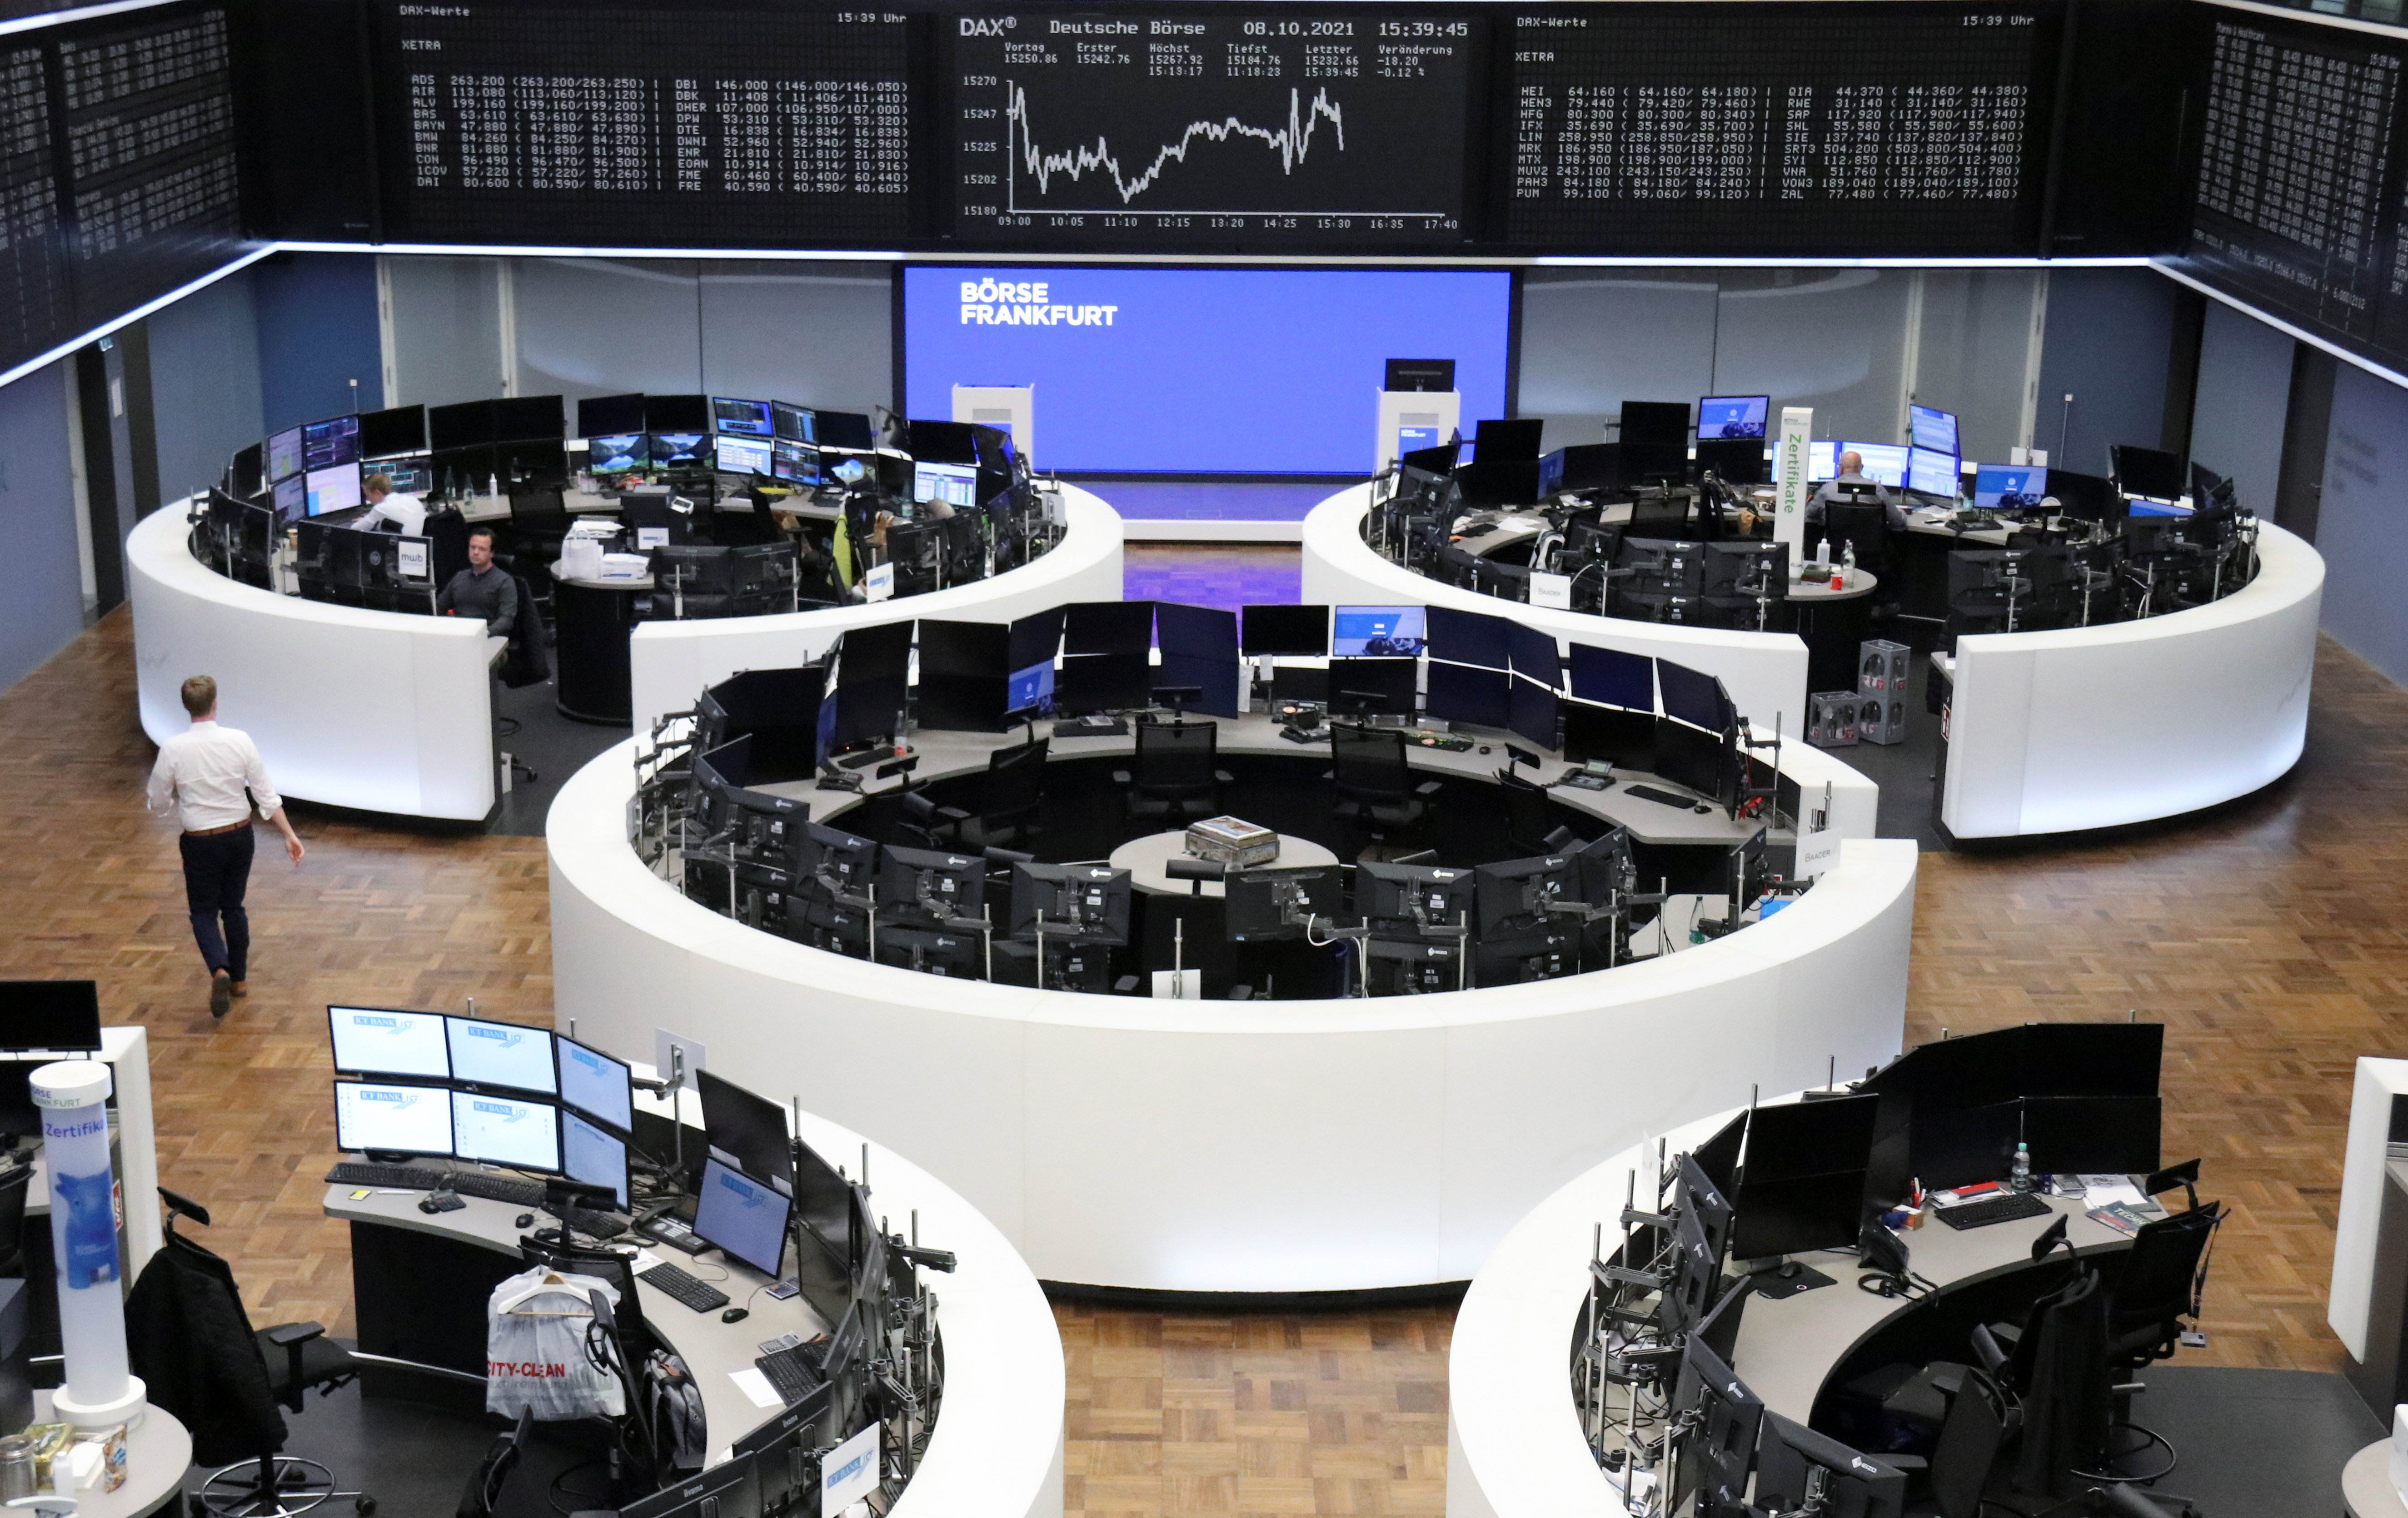 The German share price index DAX graph is pictured at the stock exchange in Frankfurt, Germany, October 8, 2021. REUTERS/Staff